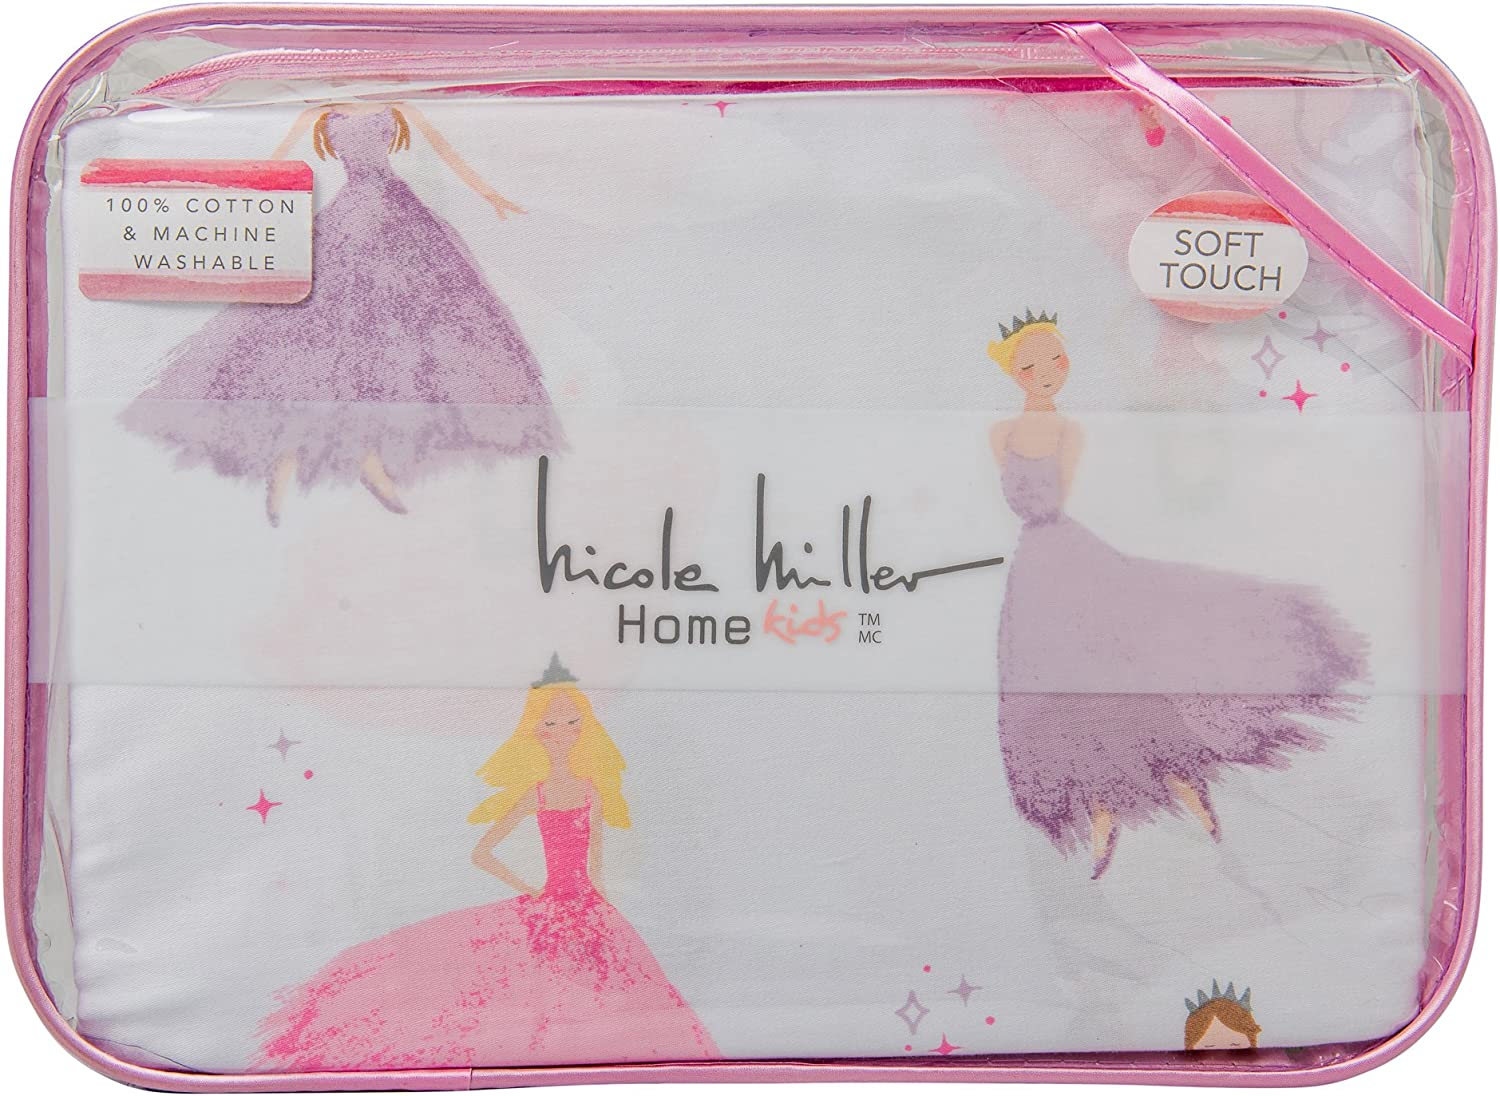 Nicole Miller Kids Pastel Princess 3 Piece Twin Single Bed Sheet Set 100% Easy Care and Durable Cotton Pink Purple on White